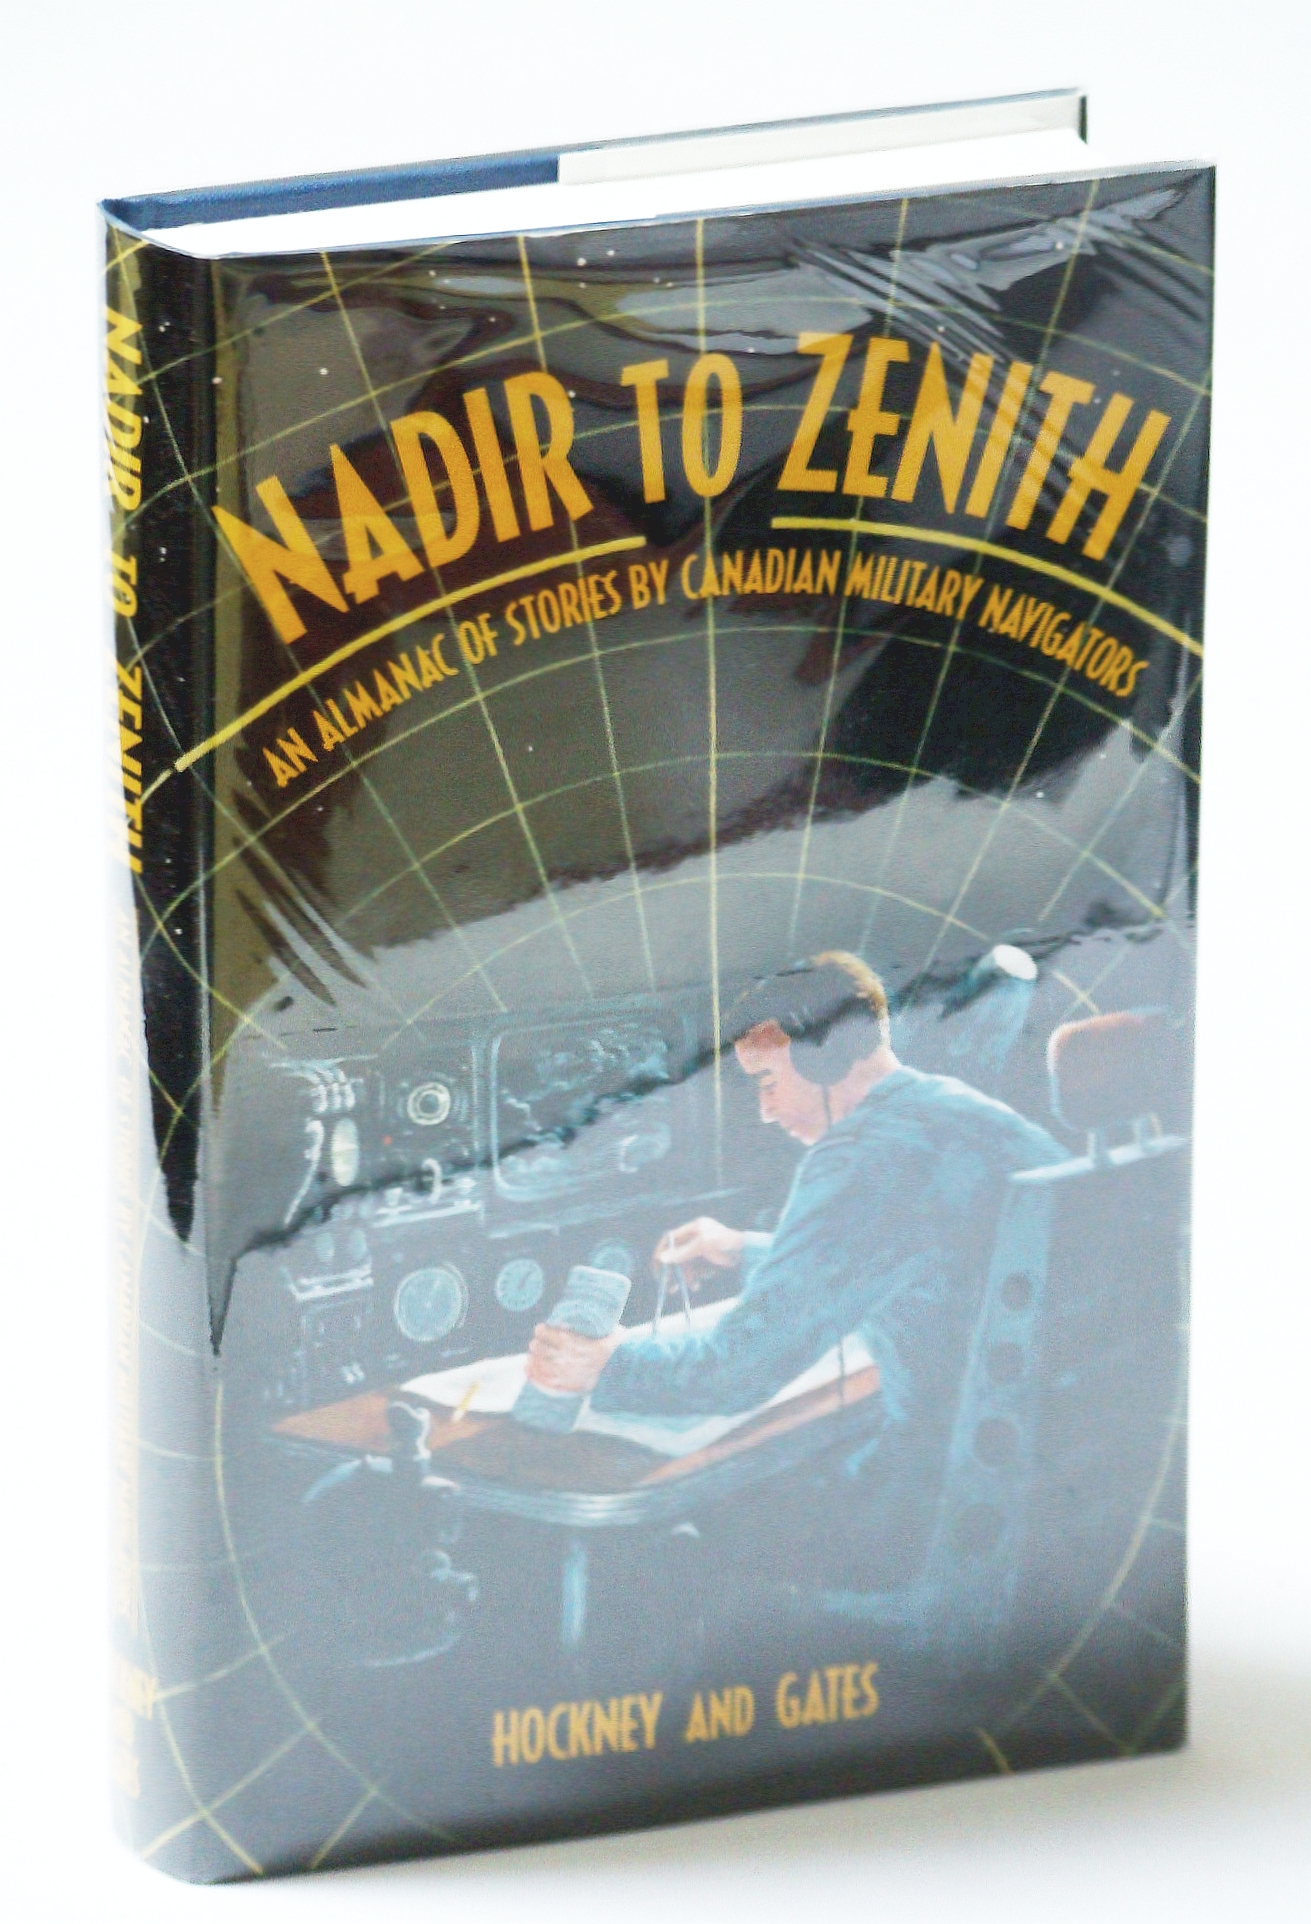 Image for Nadir to Zenith - An Almanac of Stories By Canadian Military Navigators